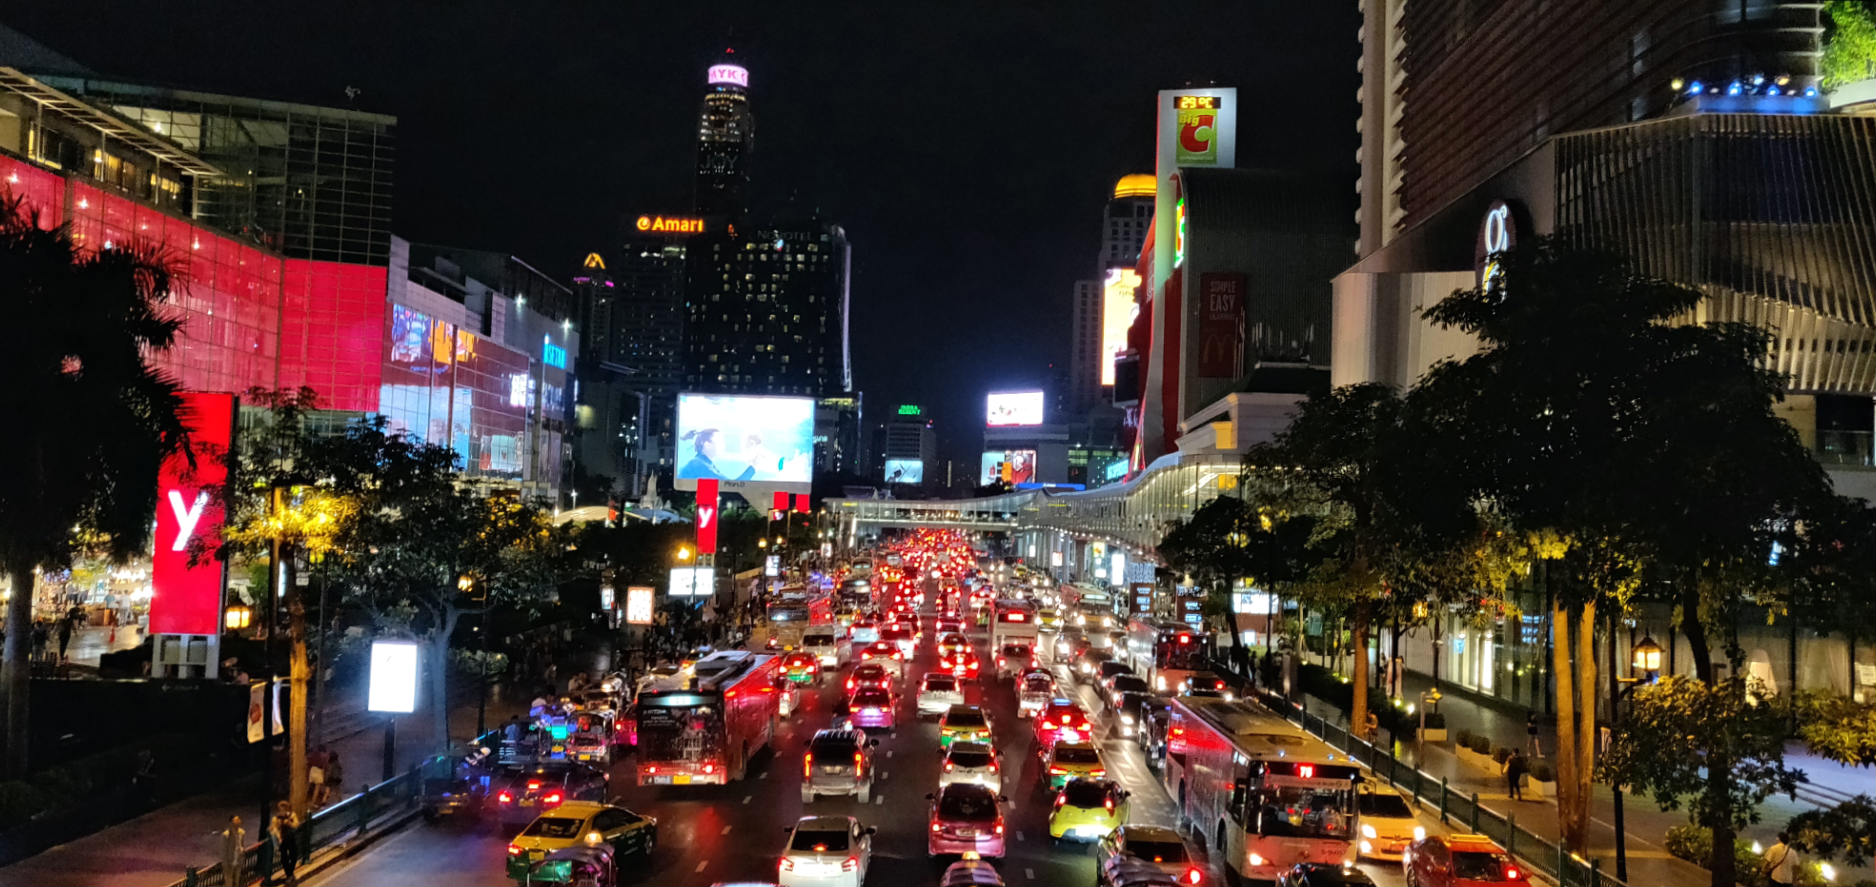 Siam Square Bangkok, heavy traffic during rush hour in the city center.